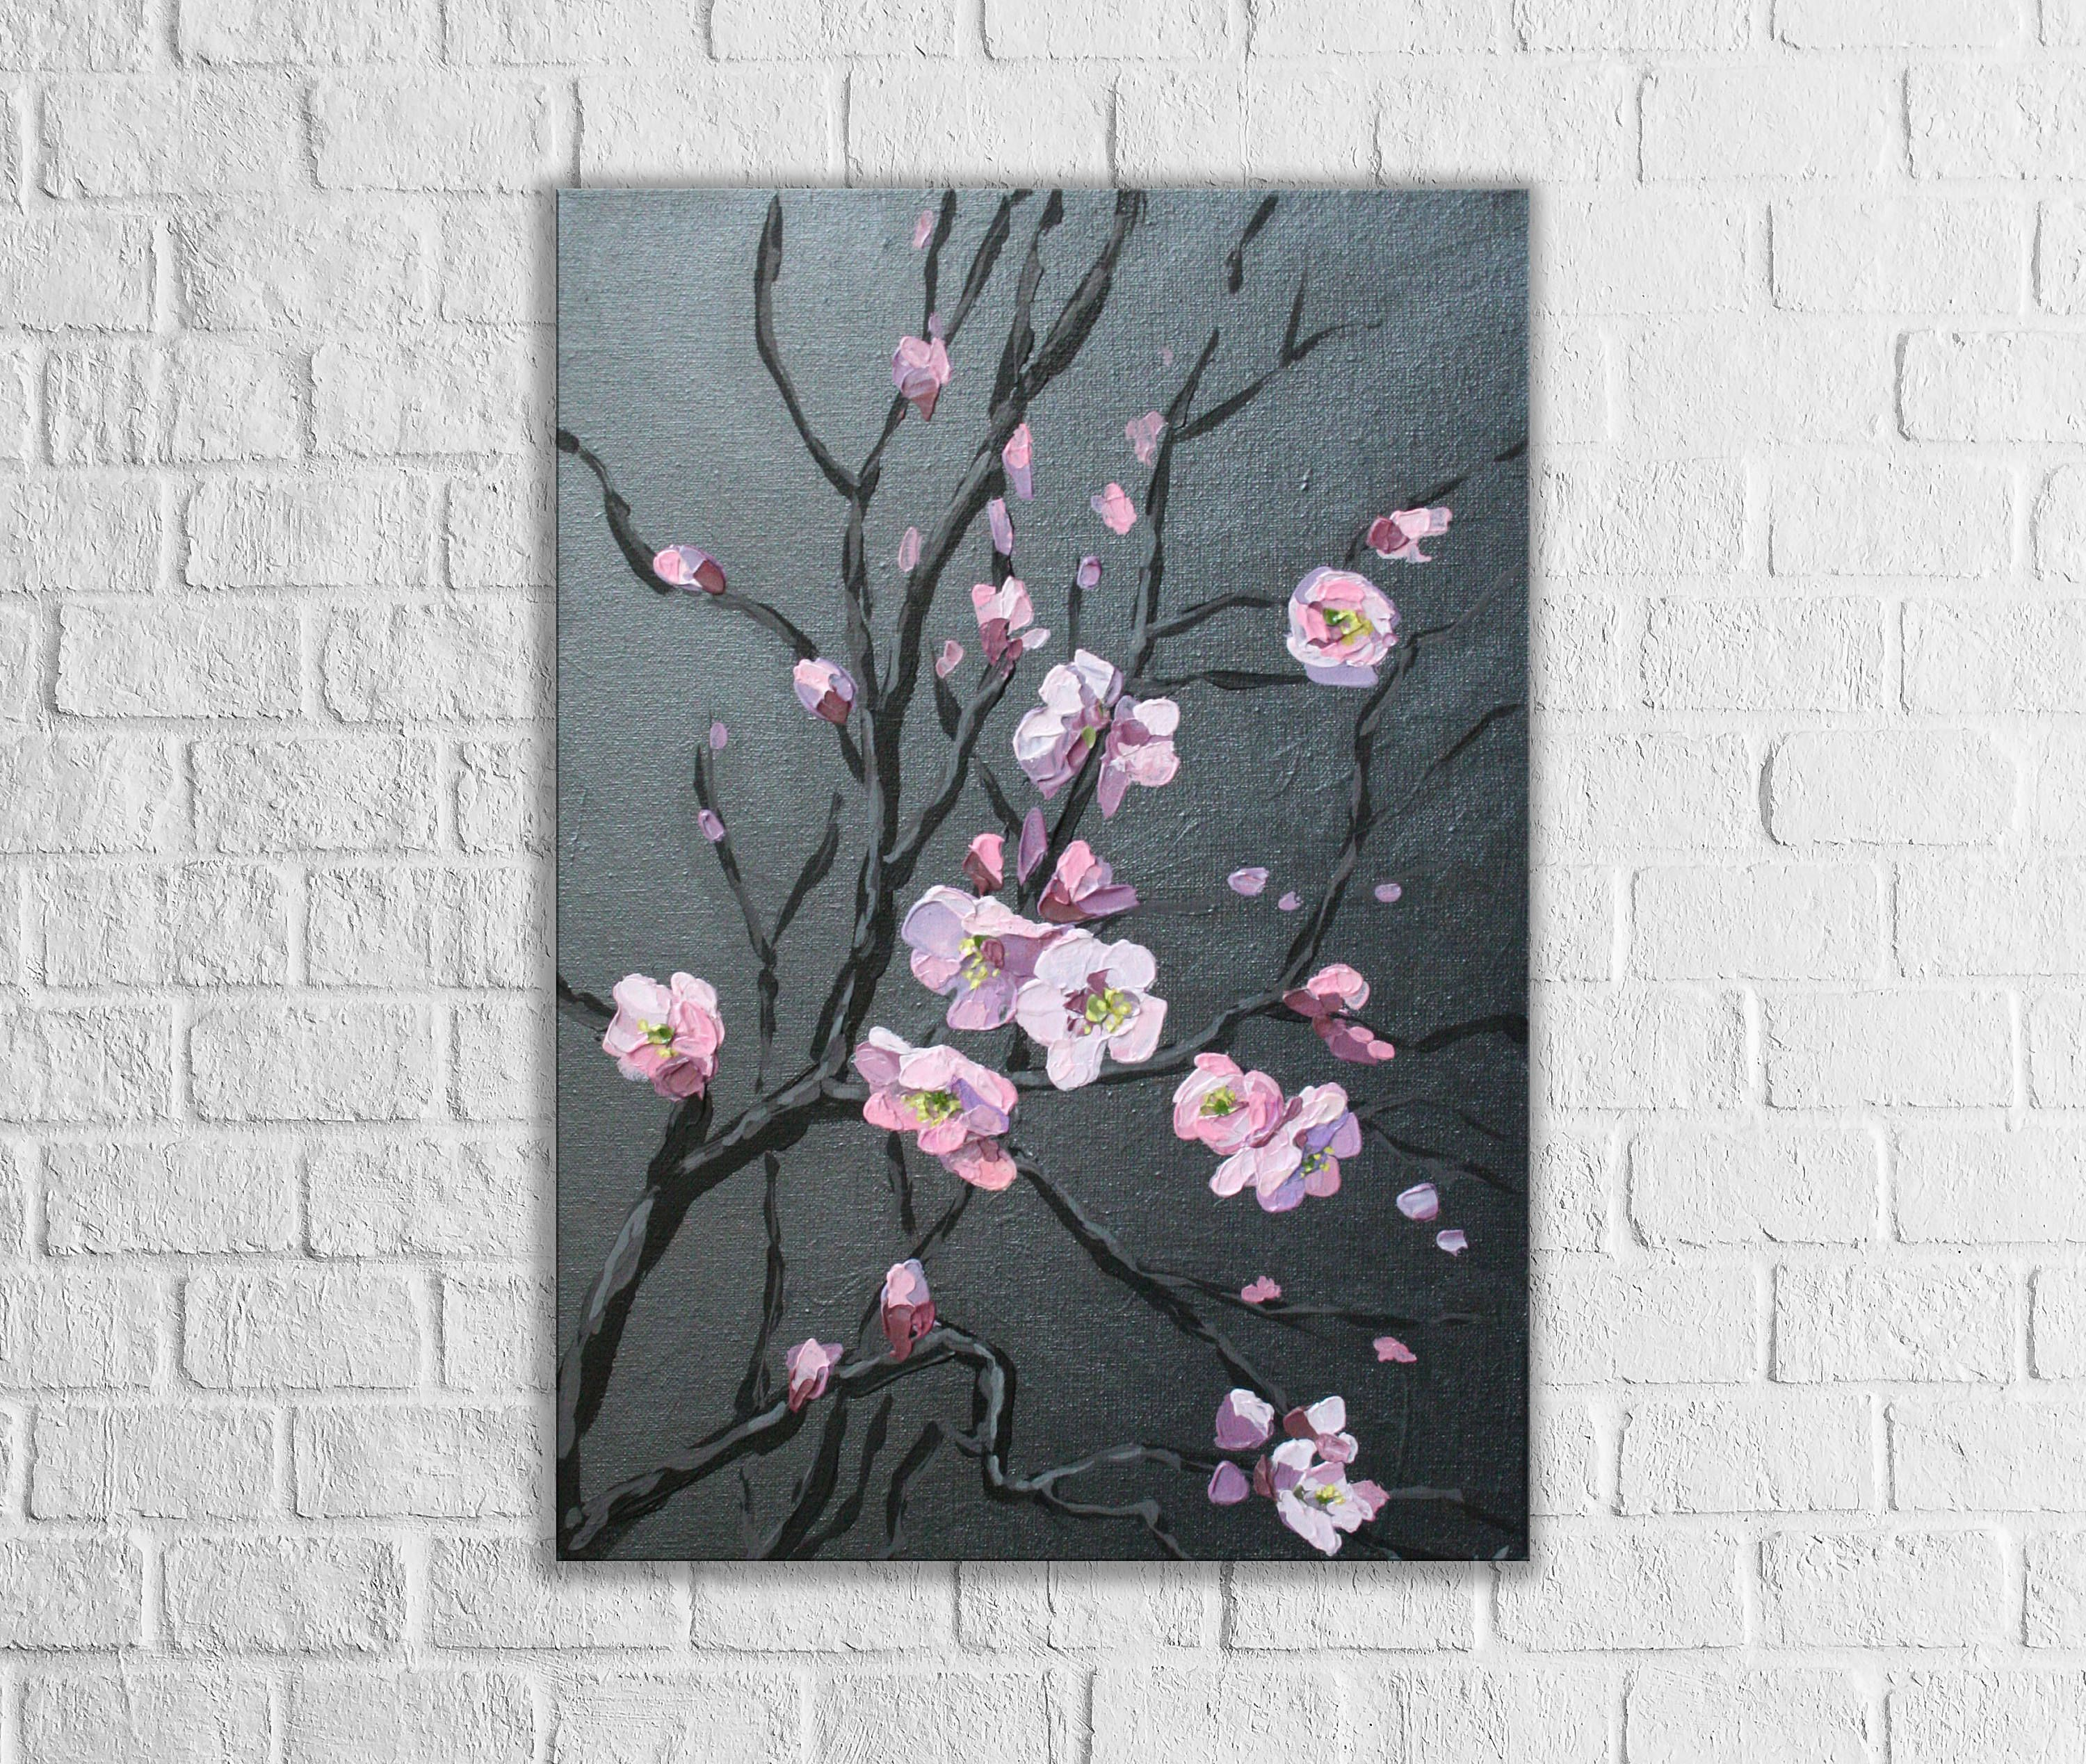 Abstract Cherry Blossom Tree Original Canvas Art Dark Painting Flowers Palette Knif Cherry Blossom Painting Cherry Blossom Painting Acrylic Abstract Floral Art